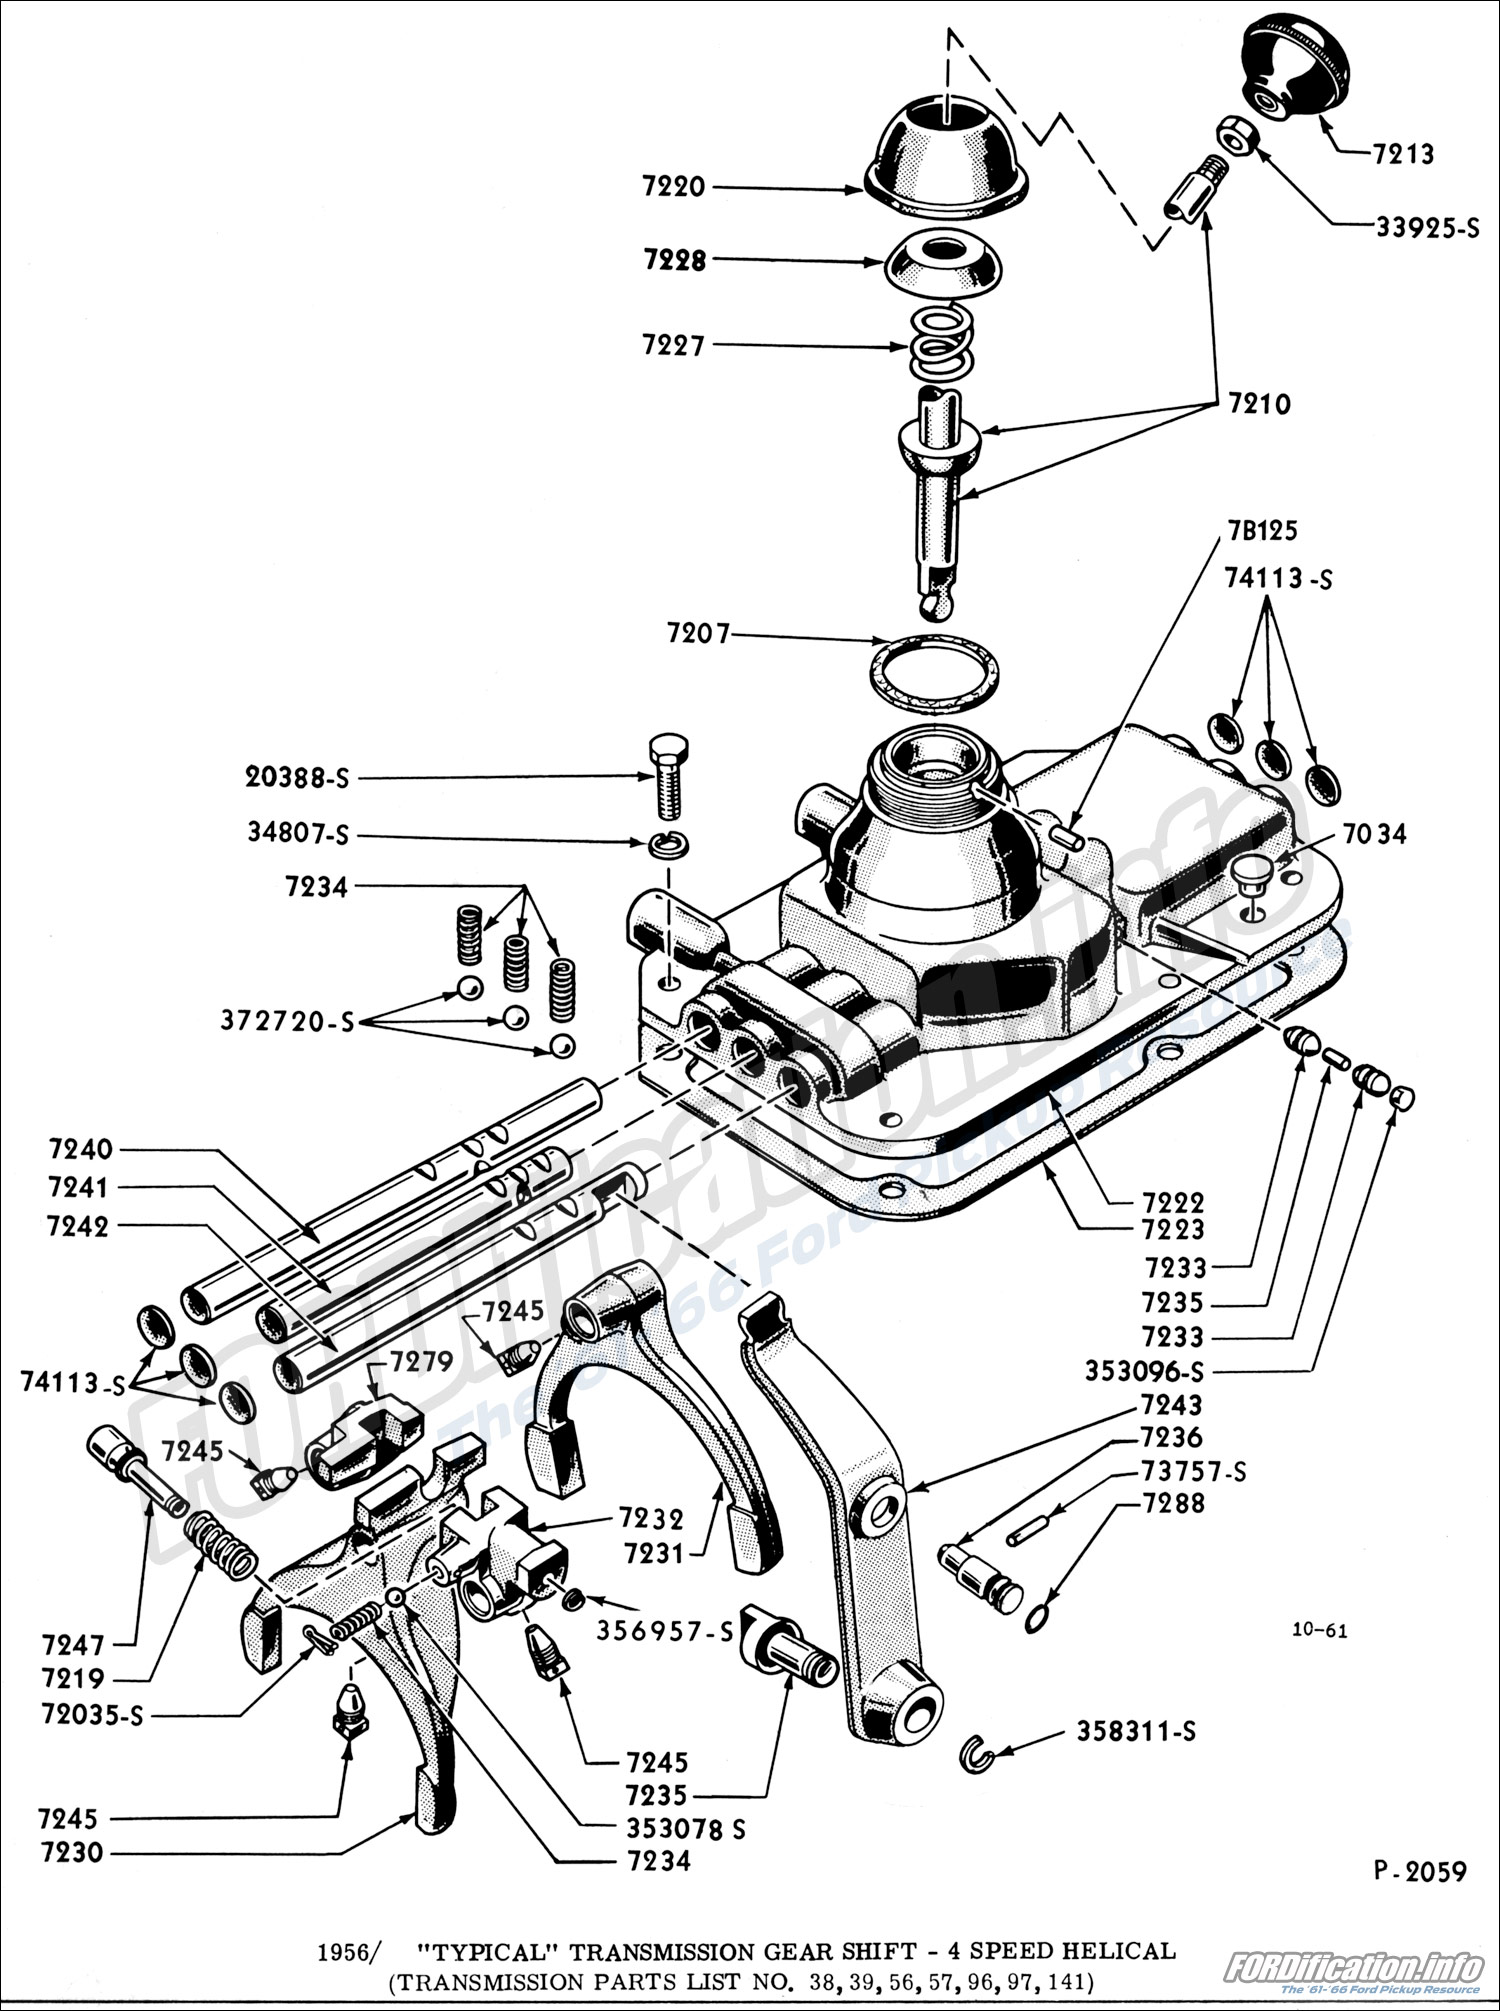 drivetrain schematics - fordification info